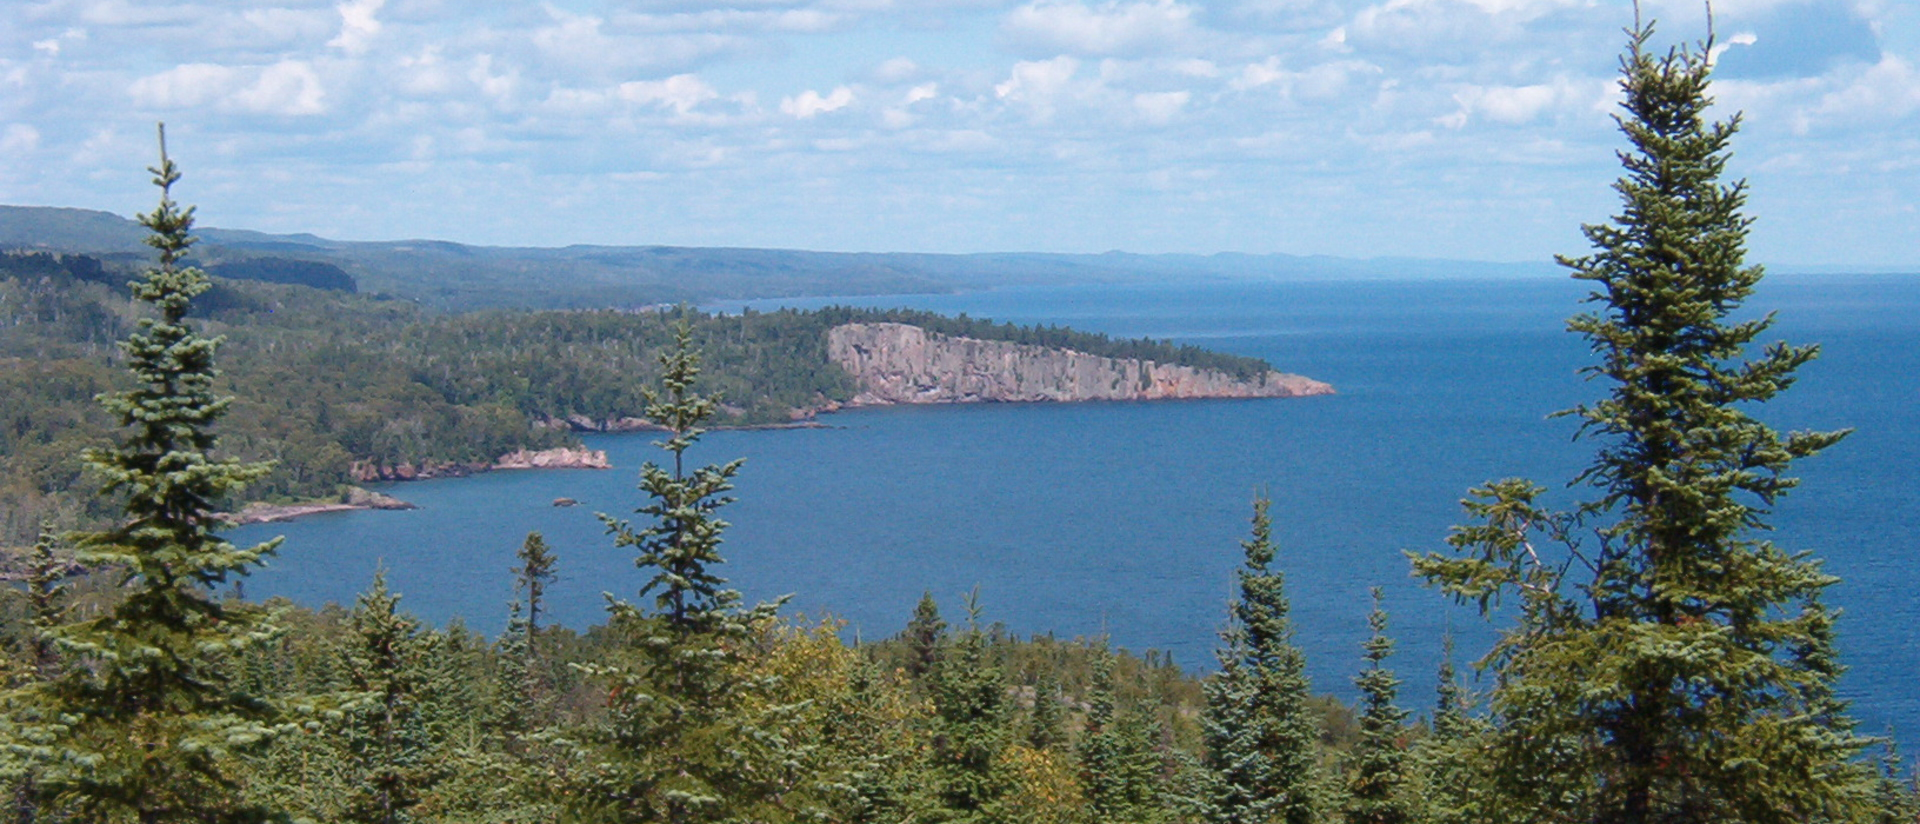 Lake Superior, North Shore